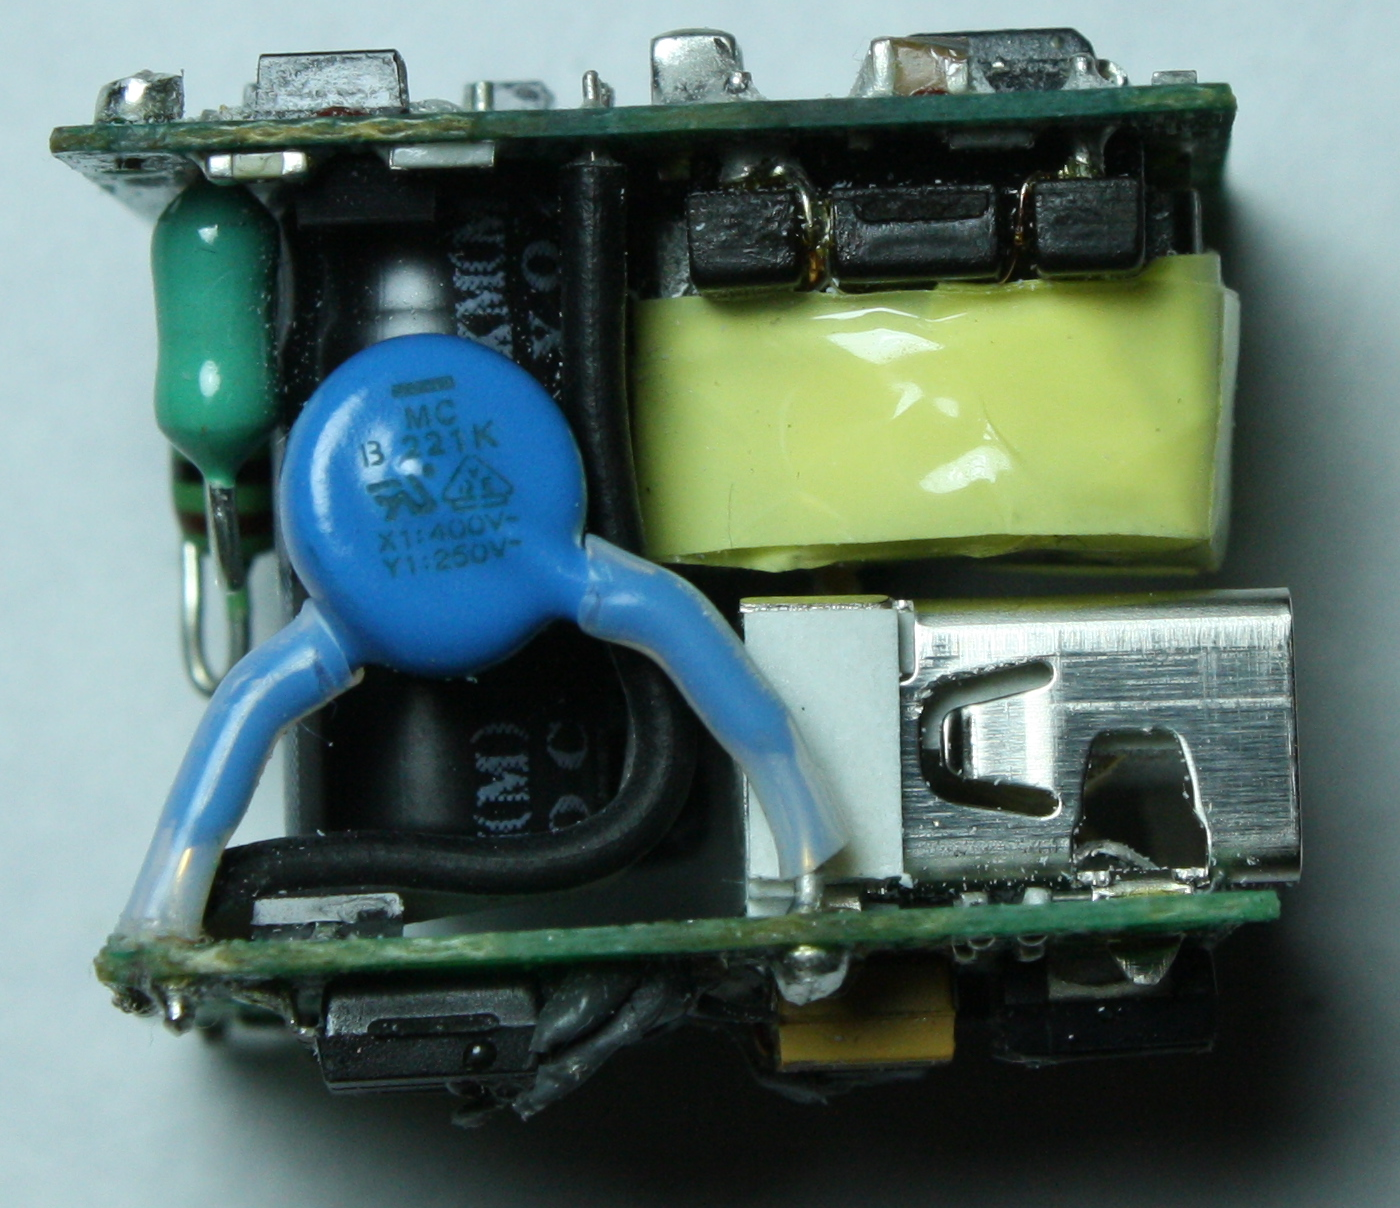 Apple Iphone Charger Teardown Quality In A Tiny Expensive Package Diagram Also Of Ipad Usb Cable Pinout On Serial Port Wiring Inside The Input Inductor Green Y Capacitor Blue